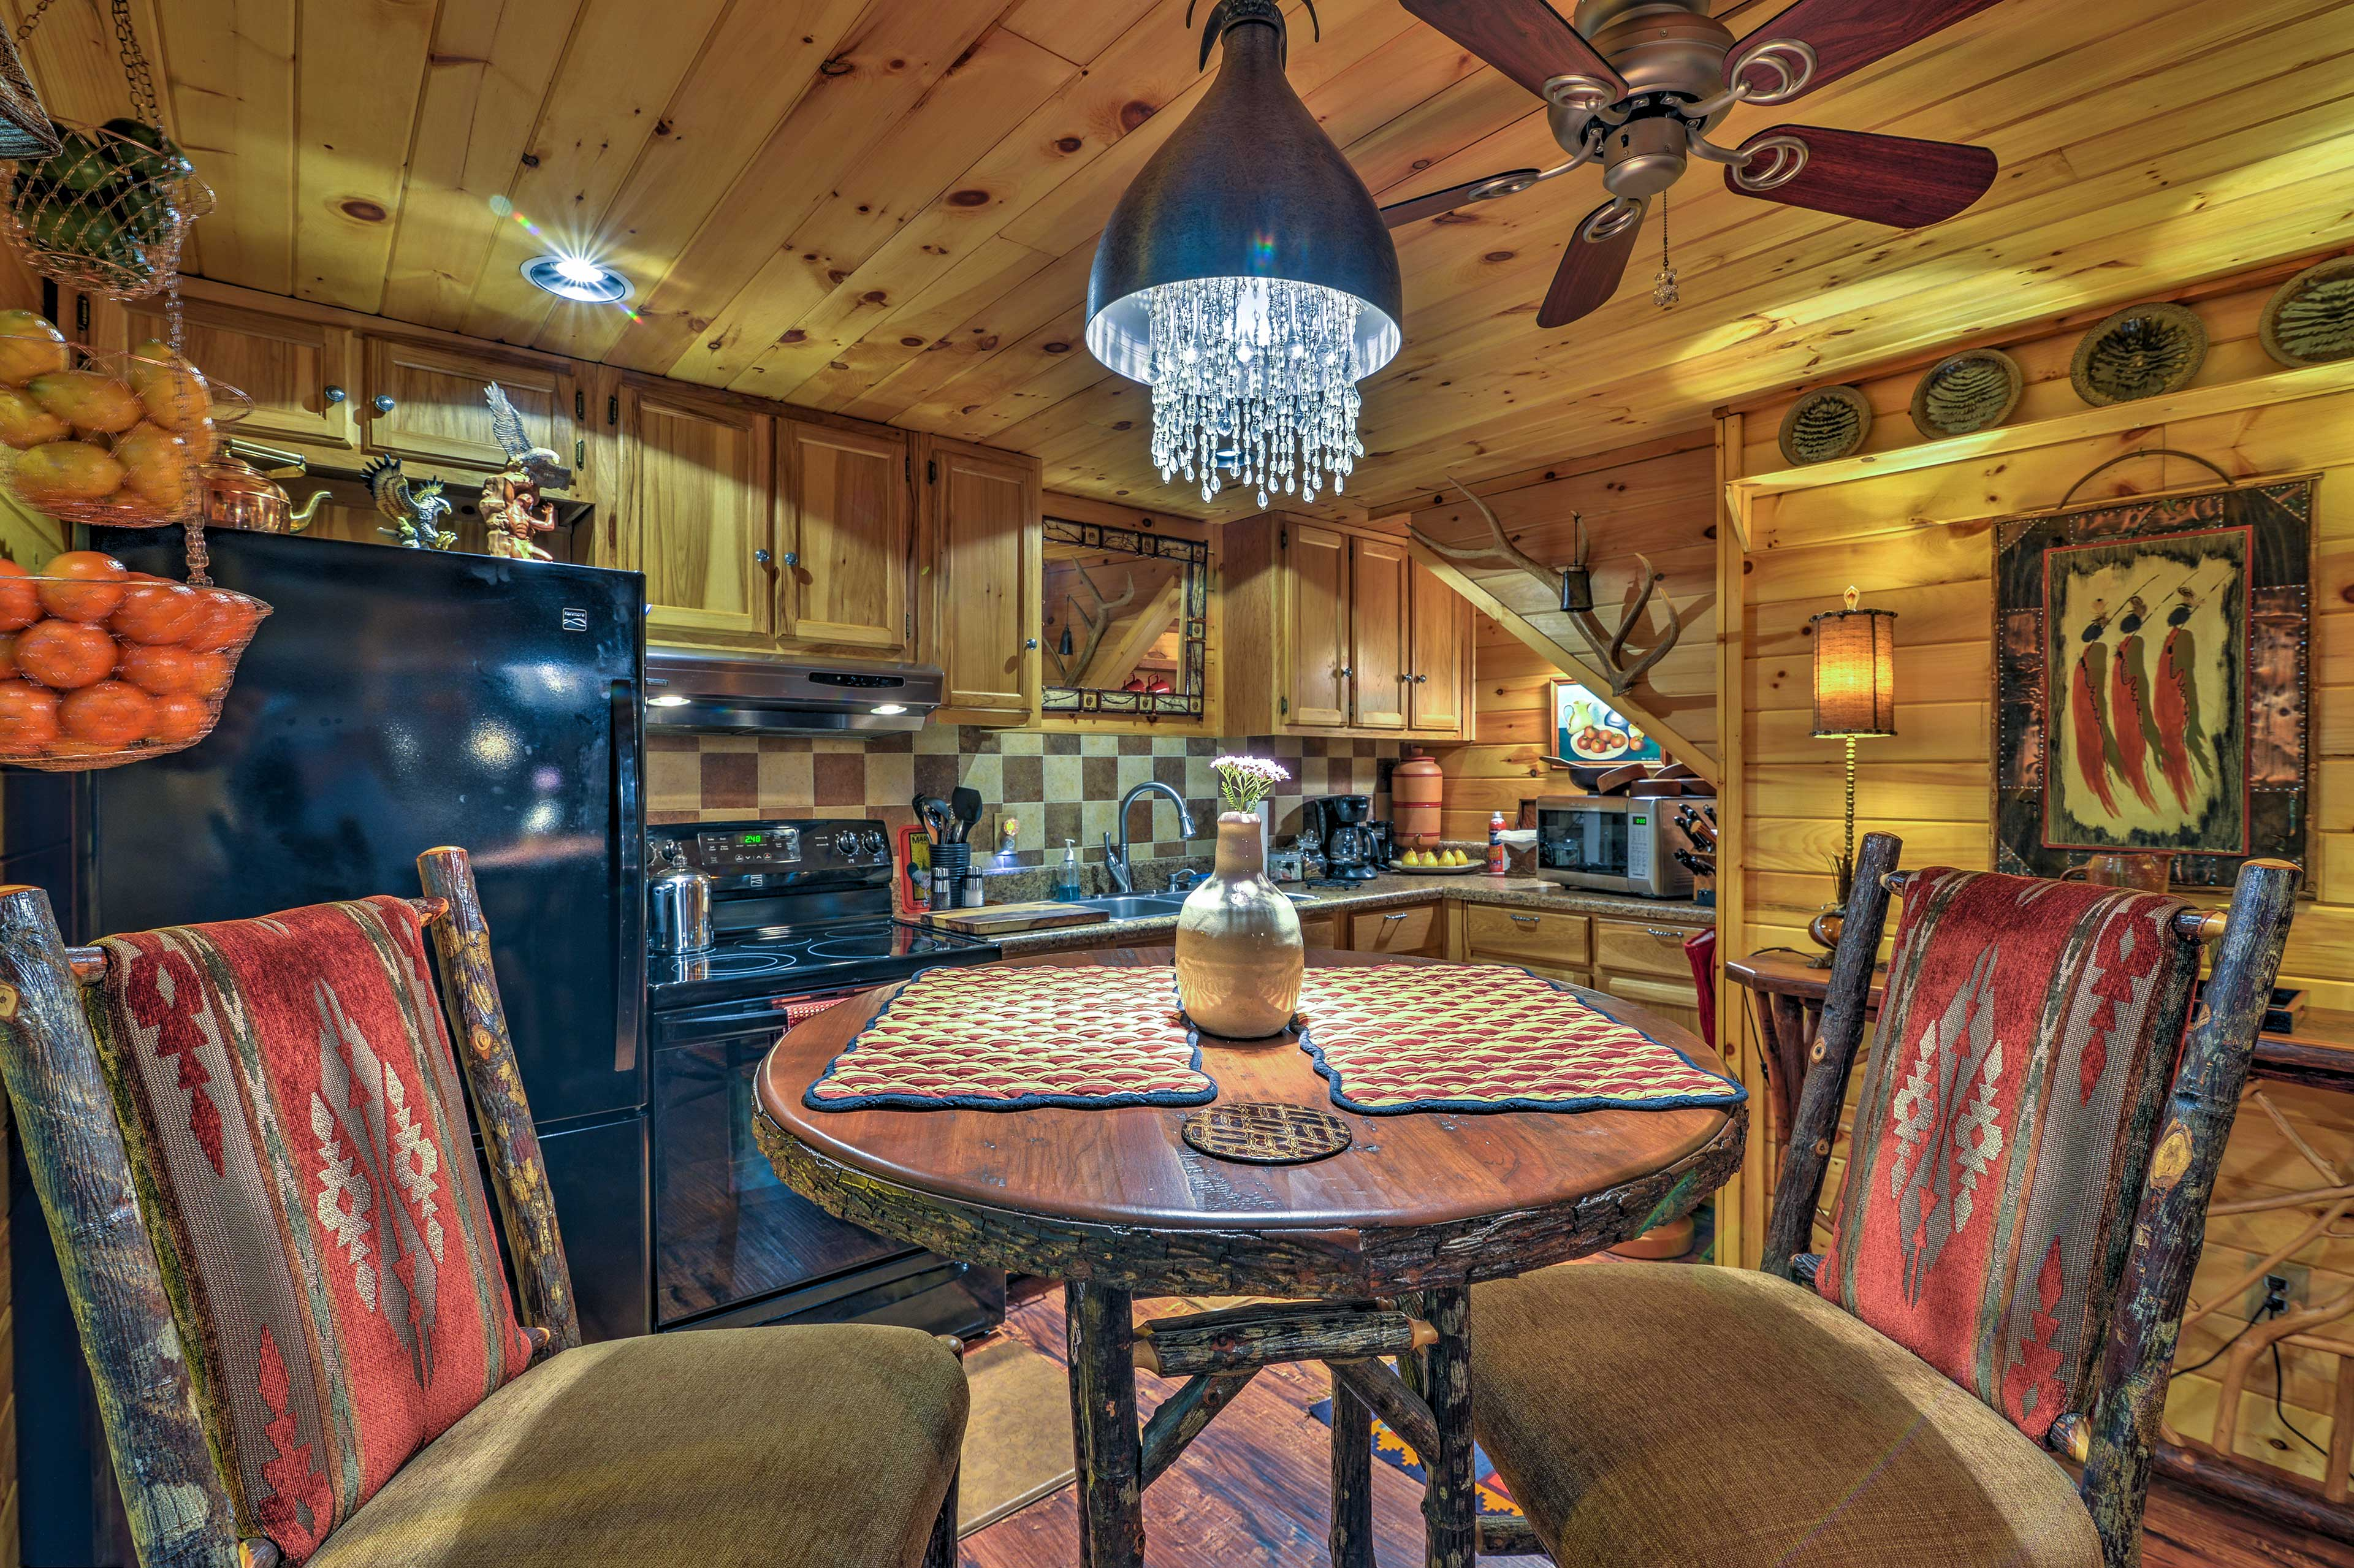 Sit down to a romantic meal at the rustic 2-person table in the kitchen.